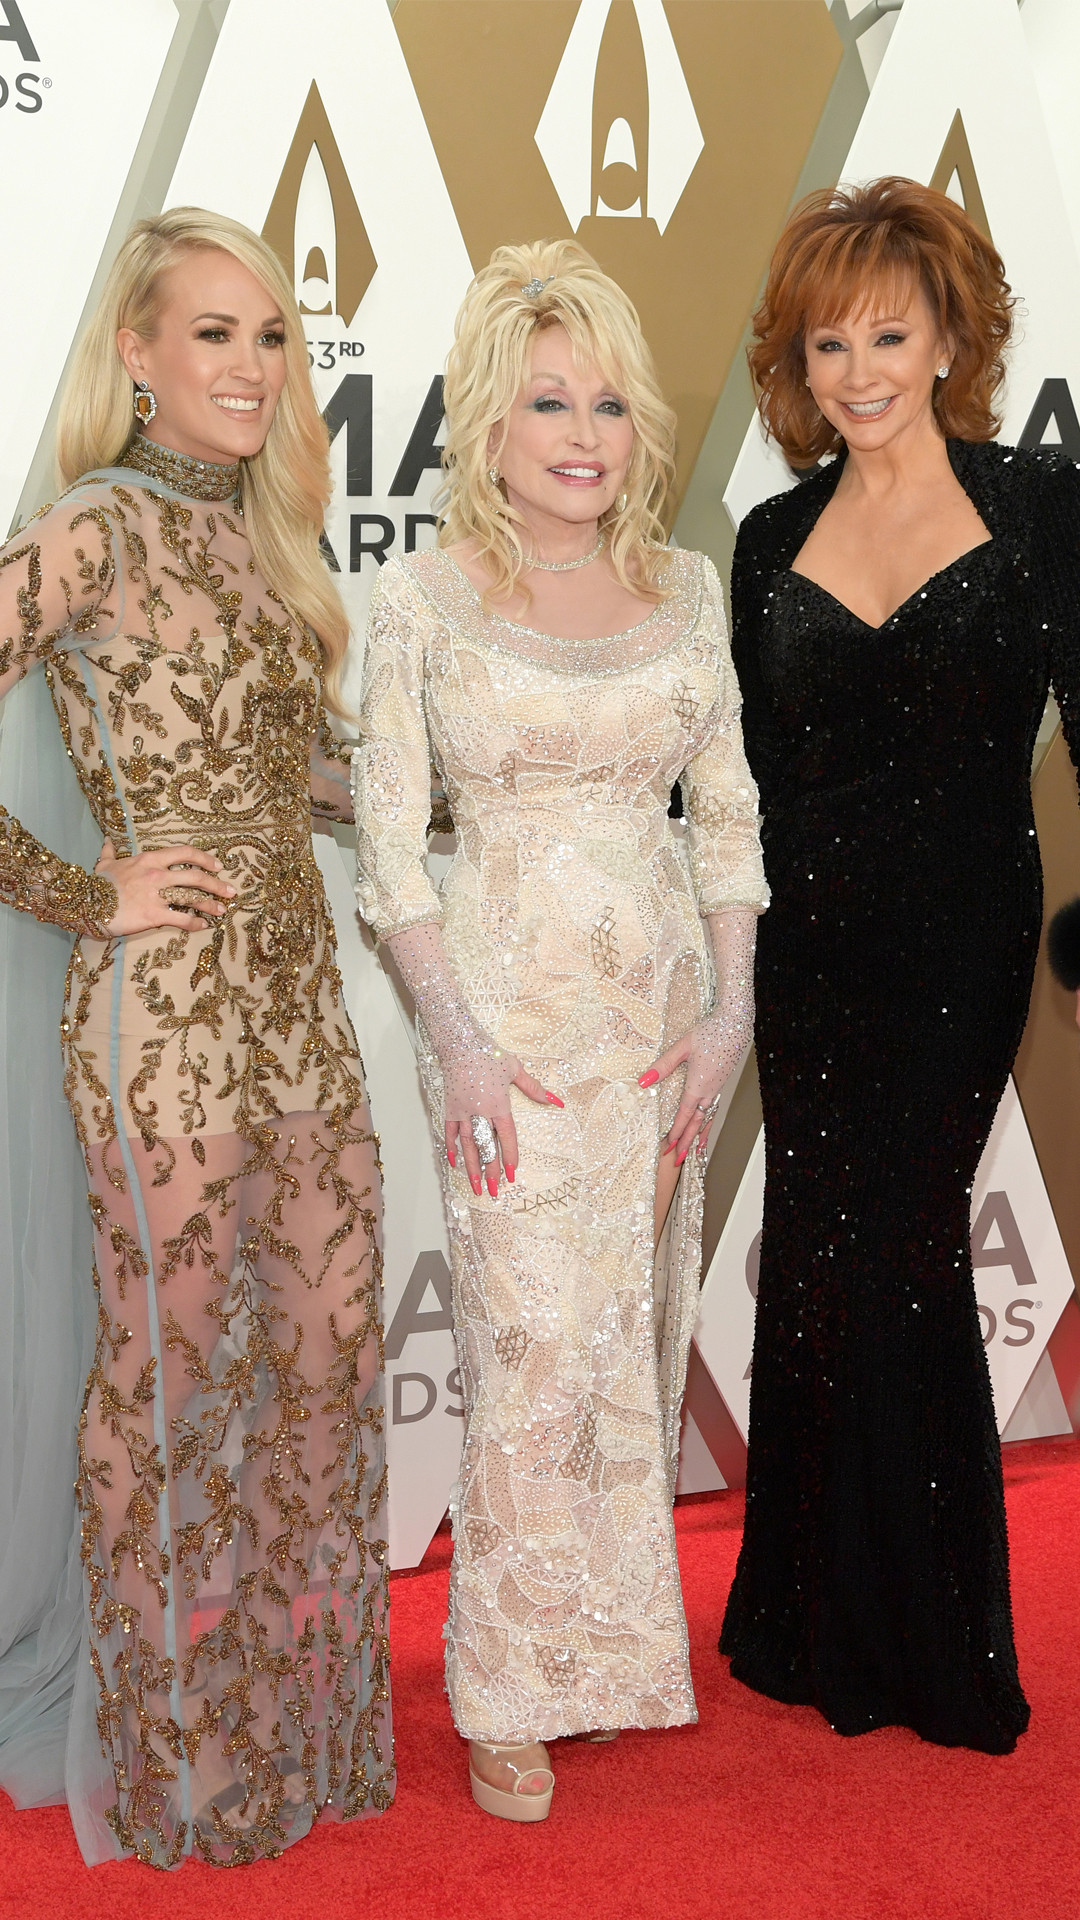 Carrie Underwood, Dolly Parton, Reba McEntire, 2019 CMA Awards